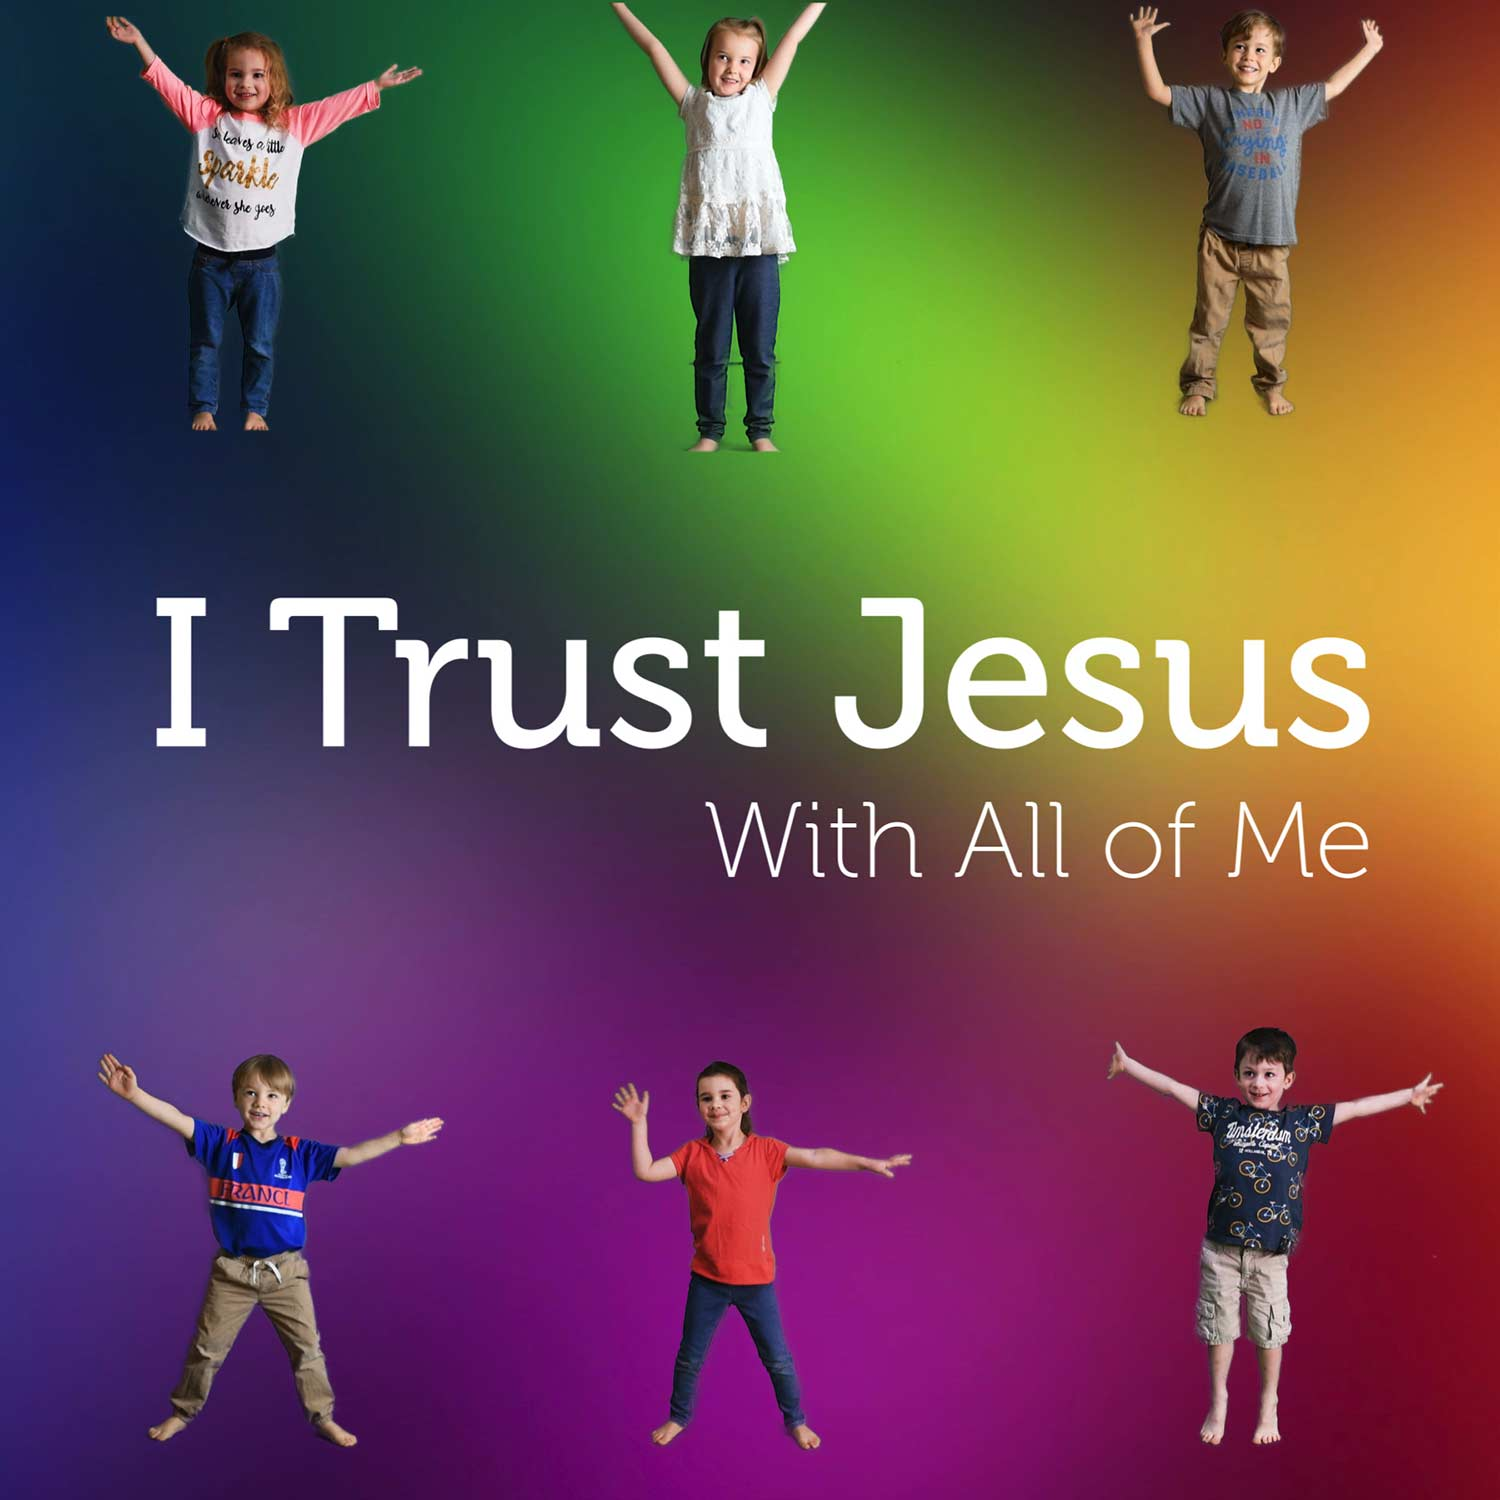 I Trust Jesus With All of Me